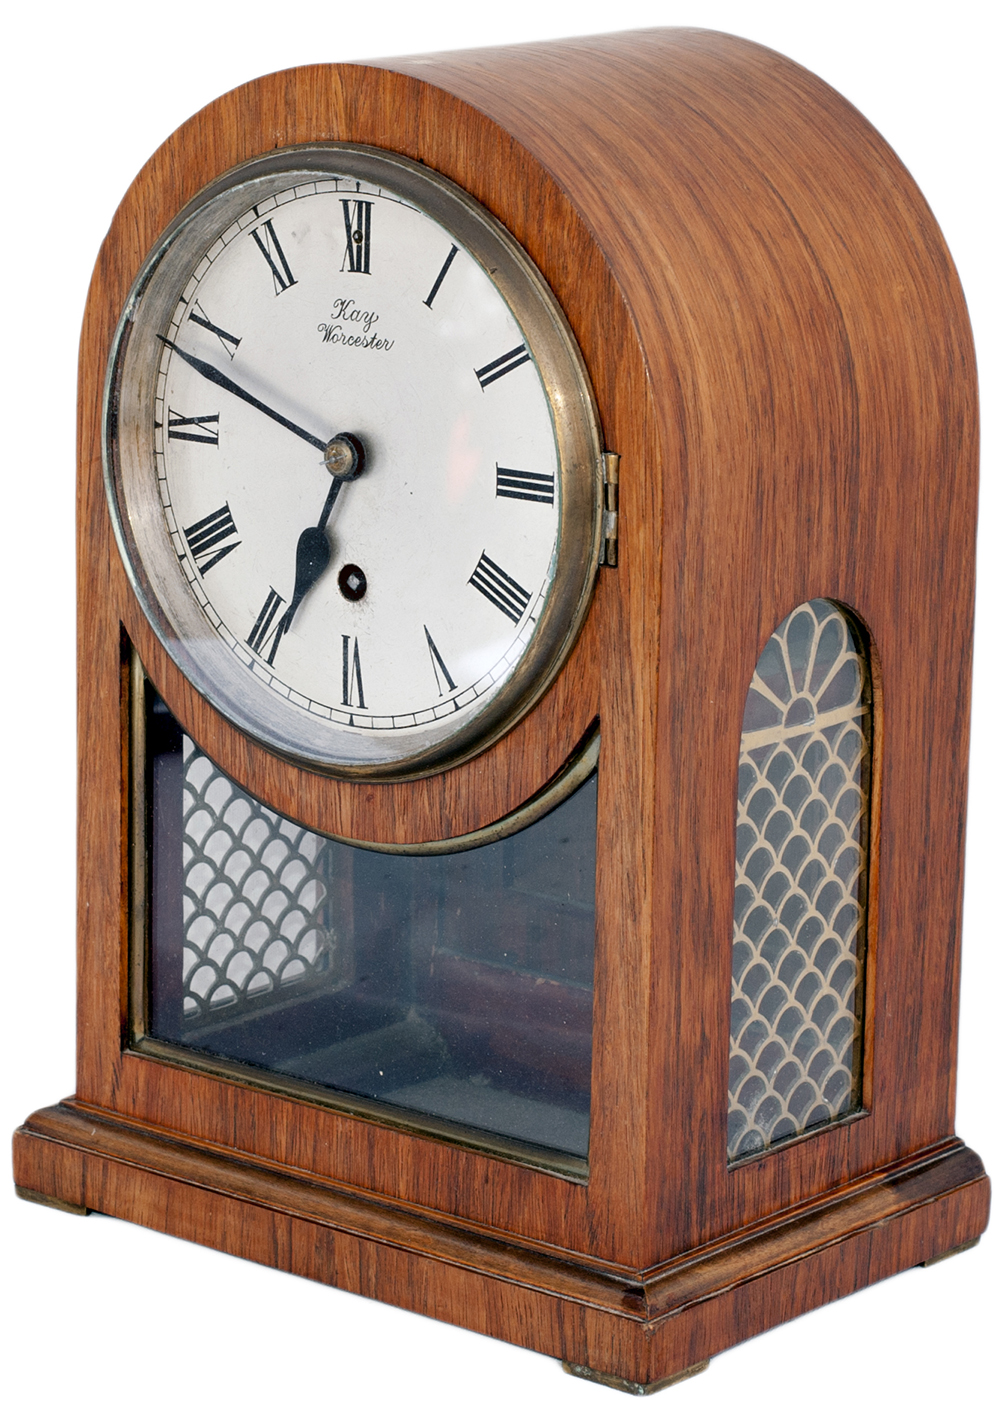 Lot 204 - Great Western Railway 6.5in dial bracket railway clock. The Mahogany arched top case has a rear